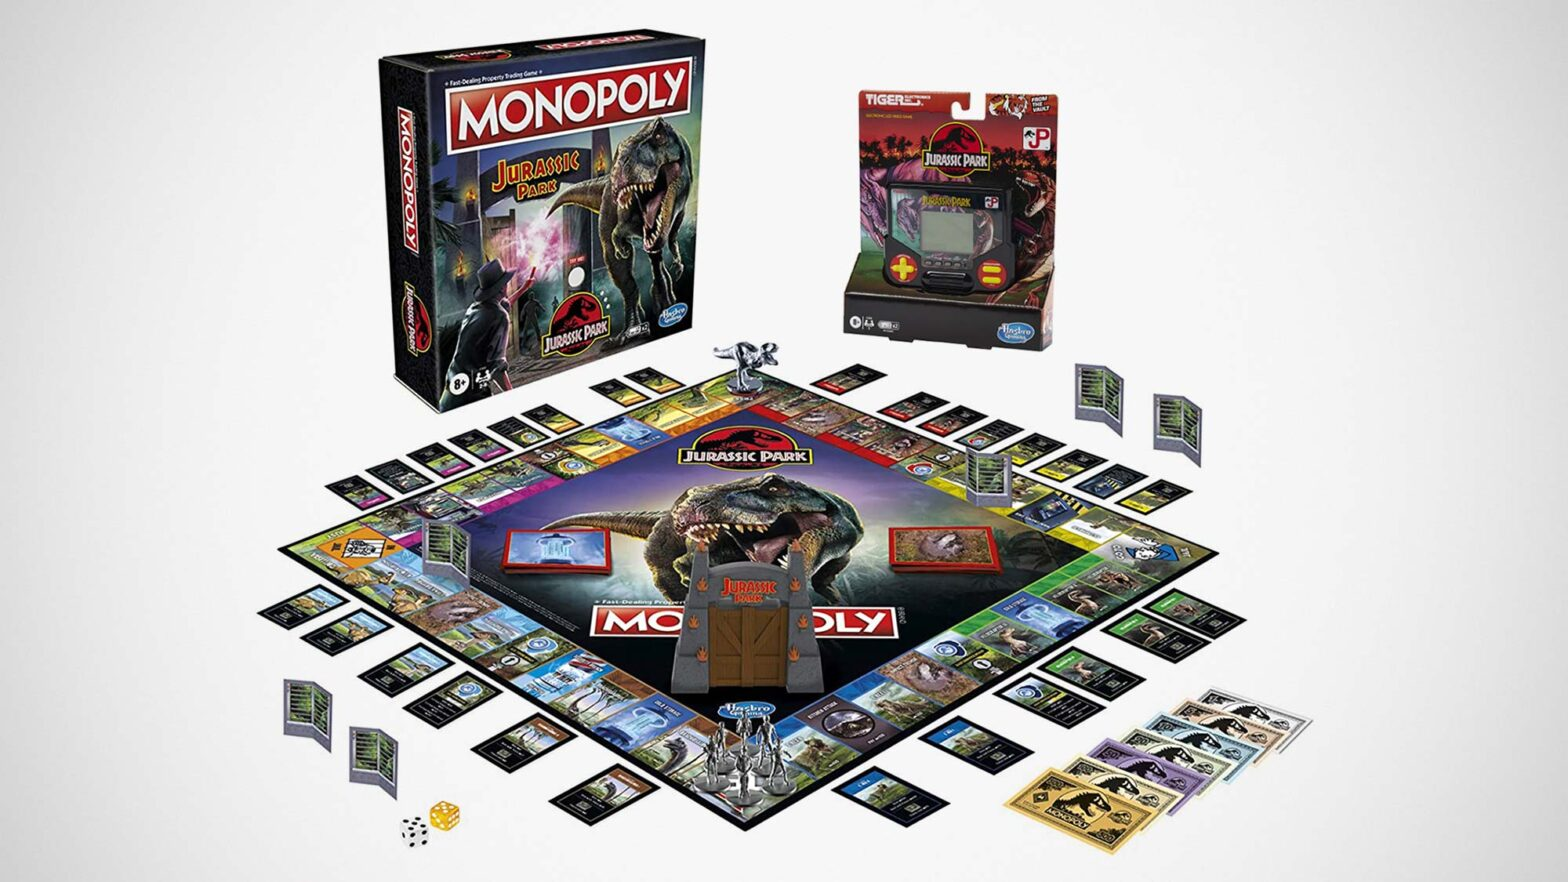 Jurassic Park Monopoly and Tiger Electronics Games